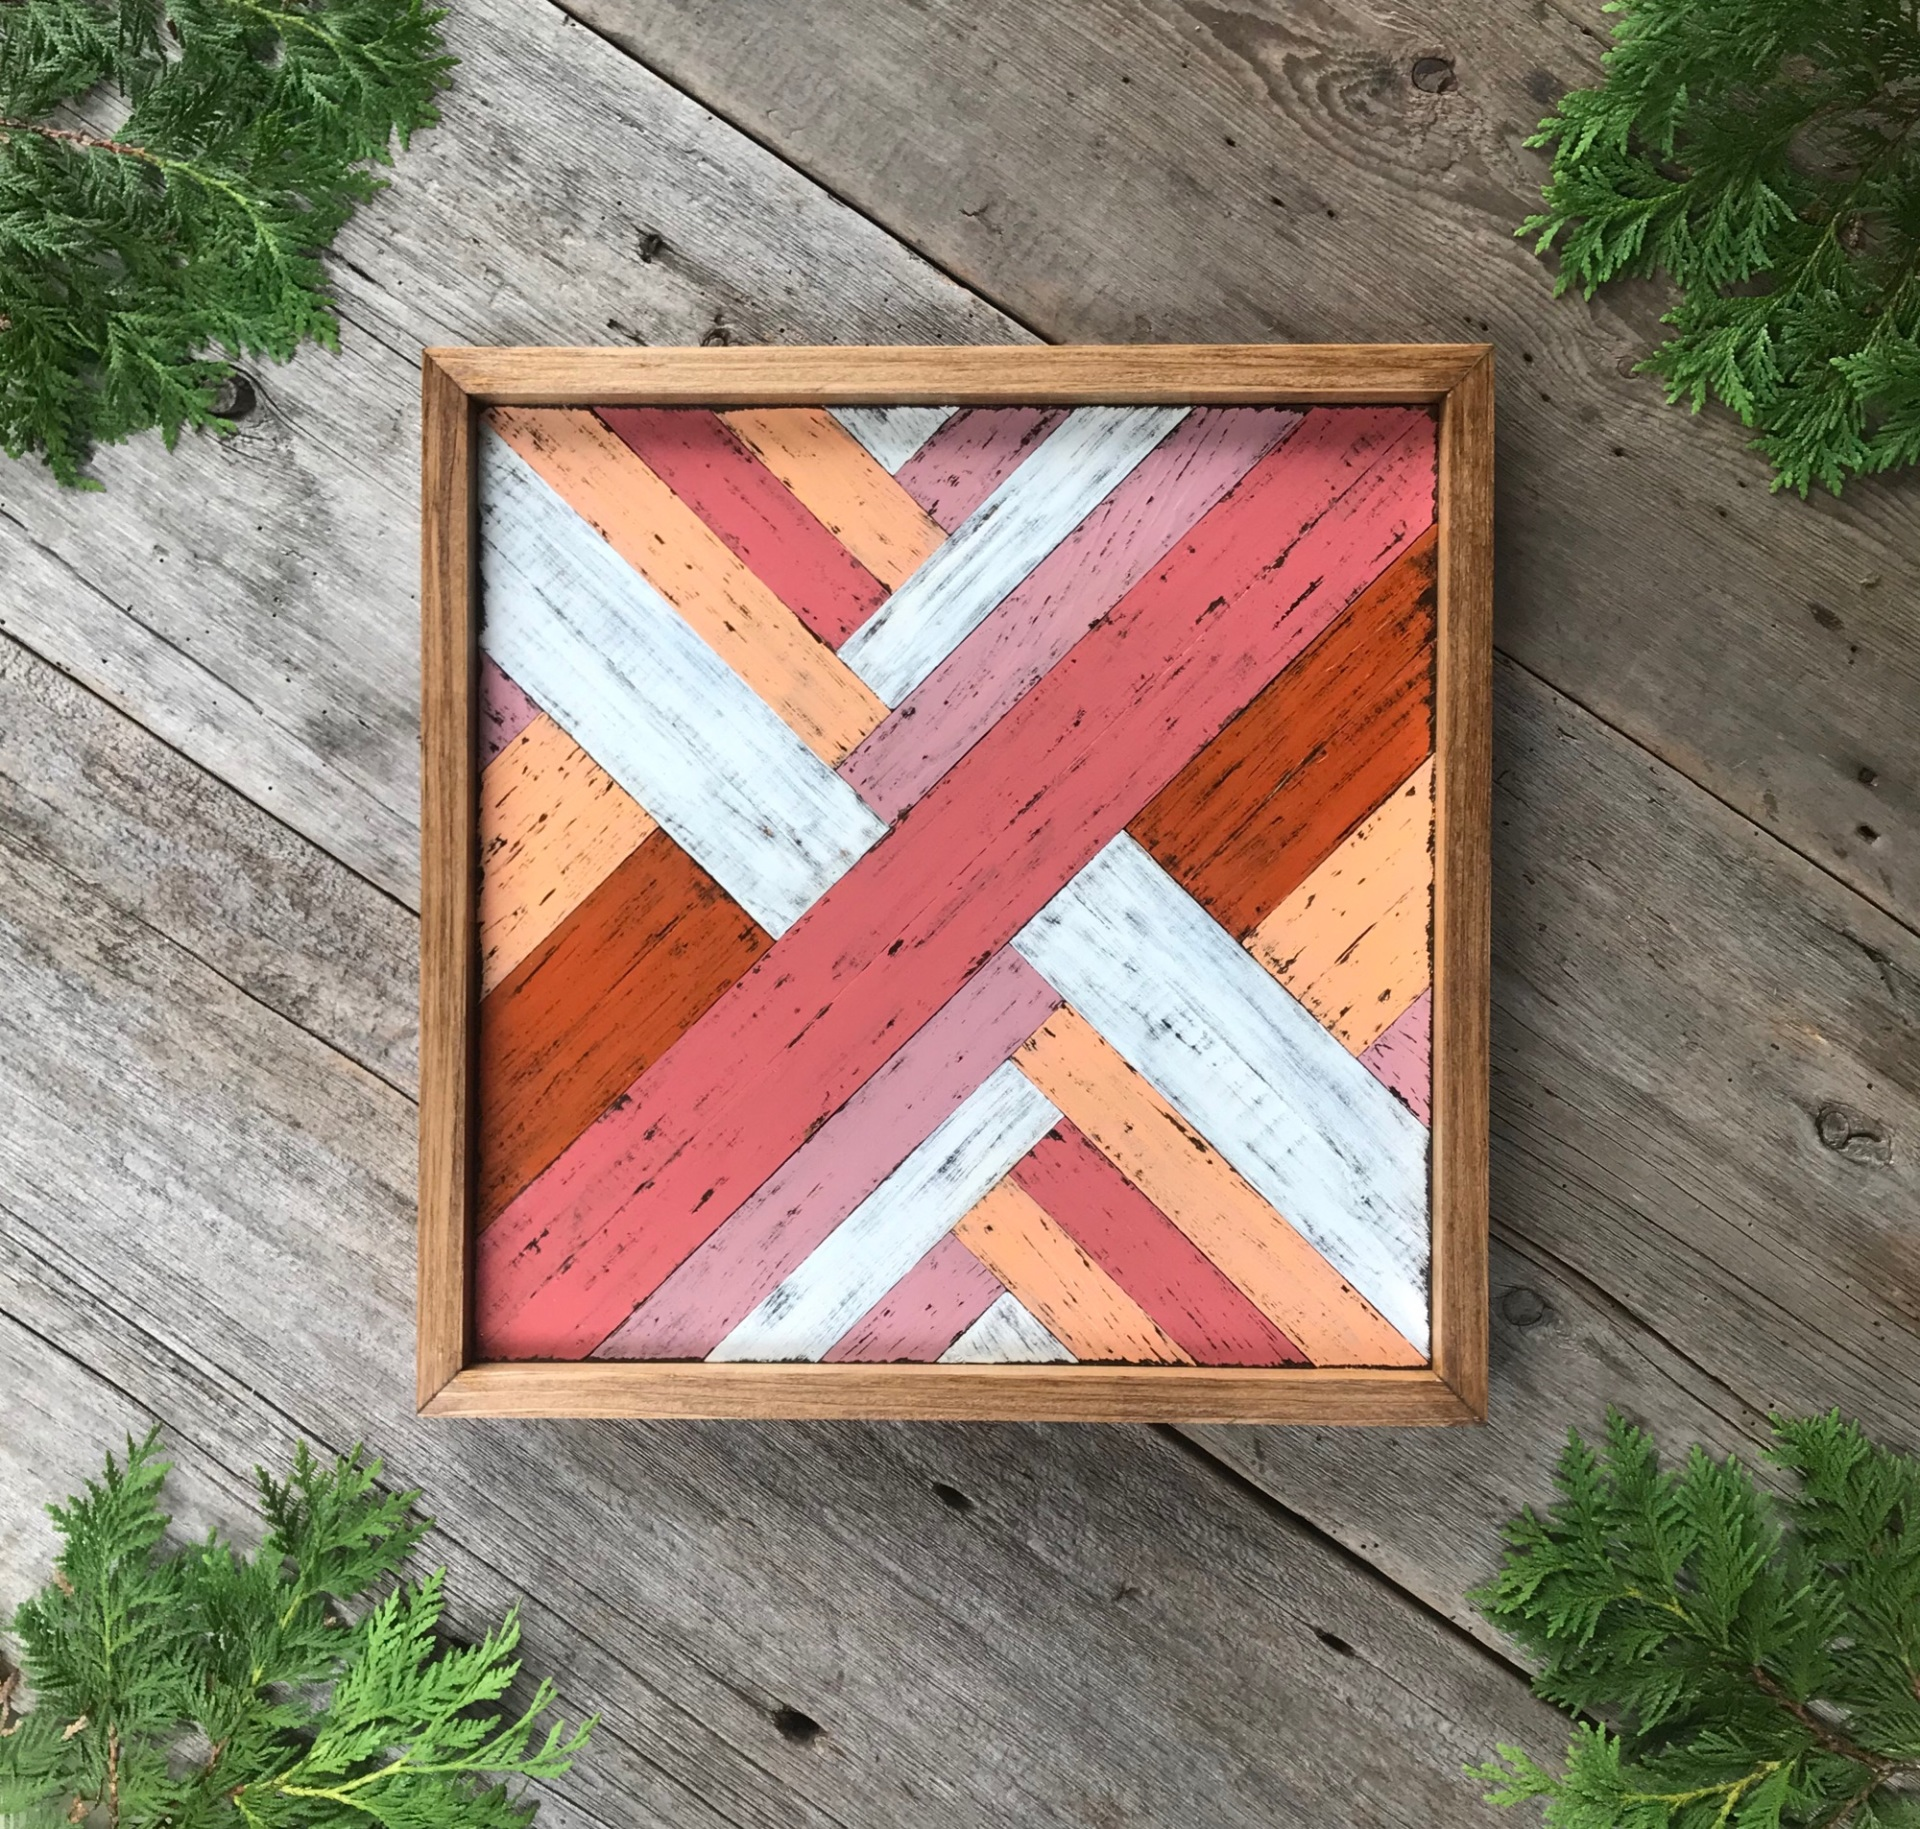 Barn Quilt, Wood Wall Art, Barn Quilt Square, Quilt Block, Colorful Wall Hanging